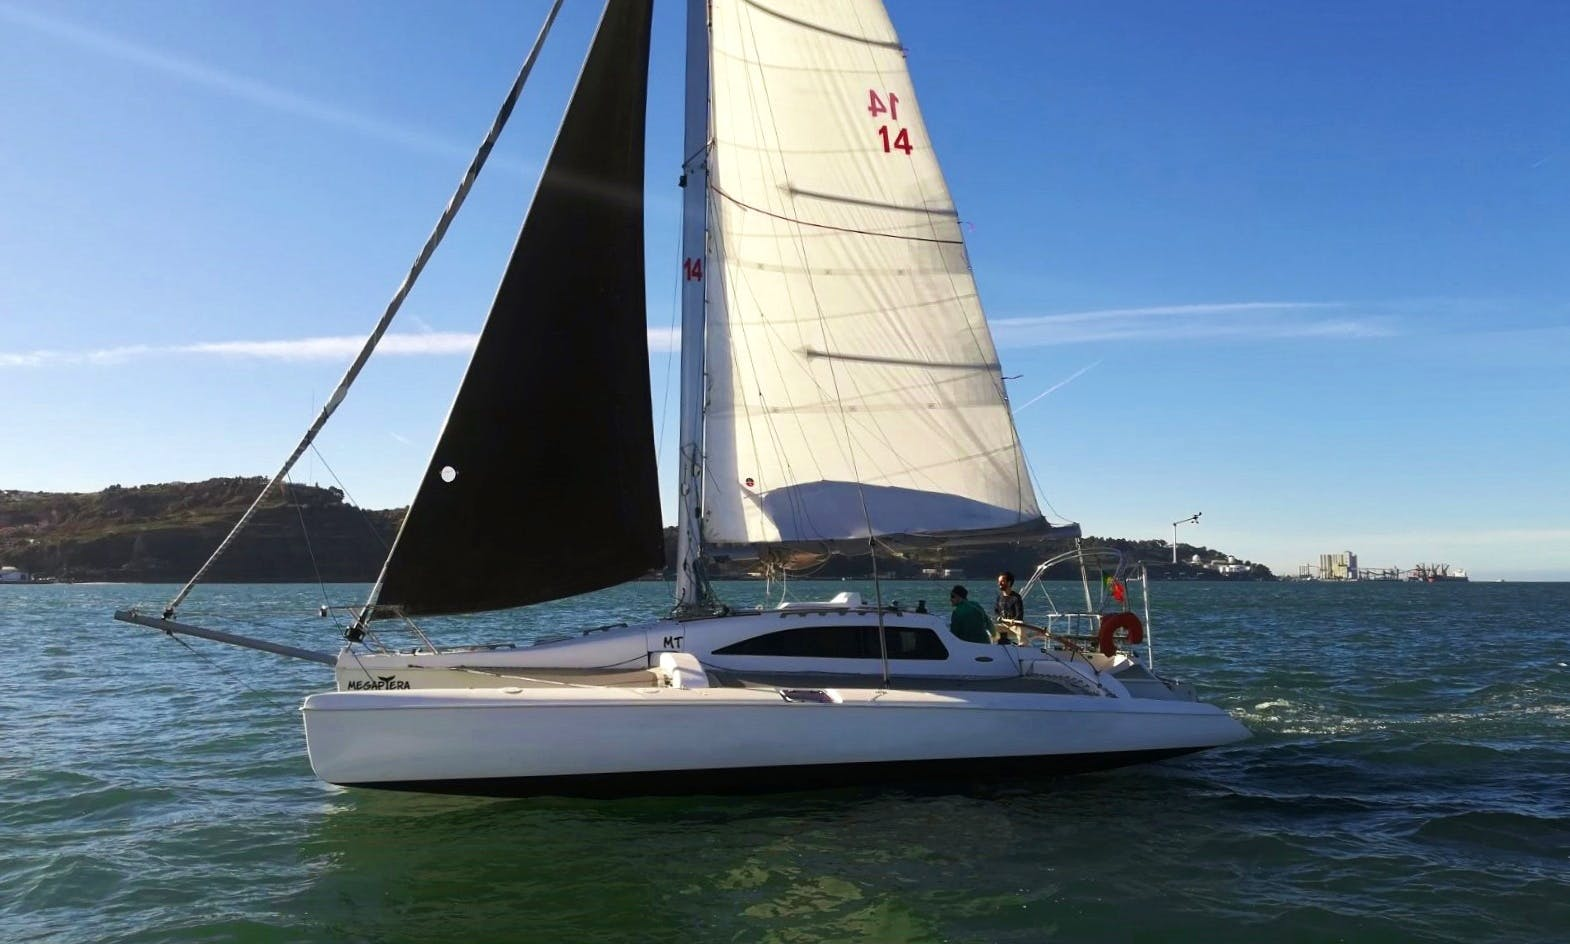 Sailing Trimaran Rental in Lisboa